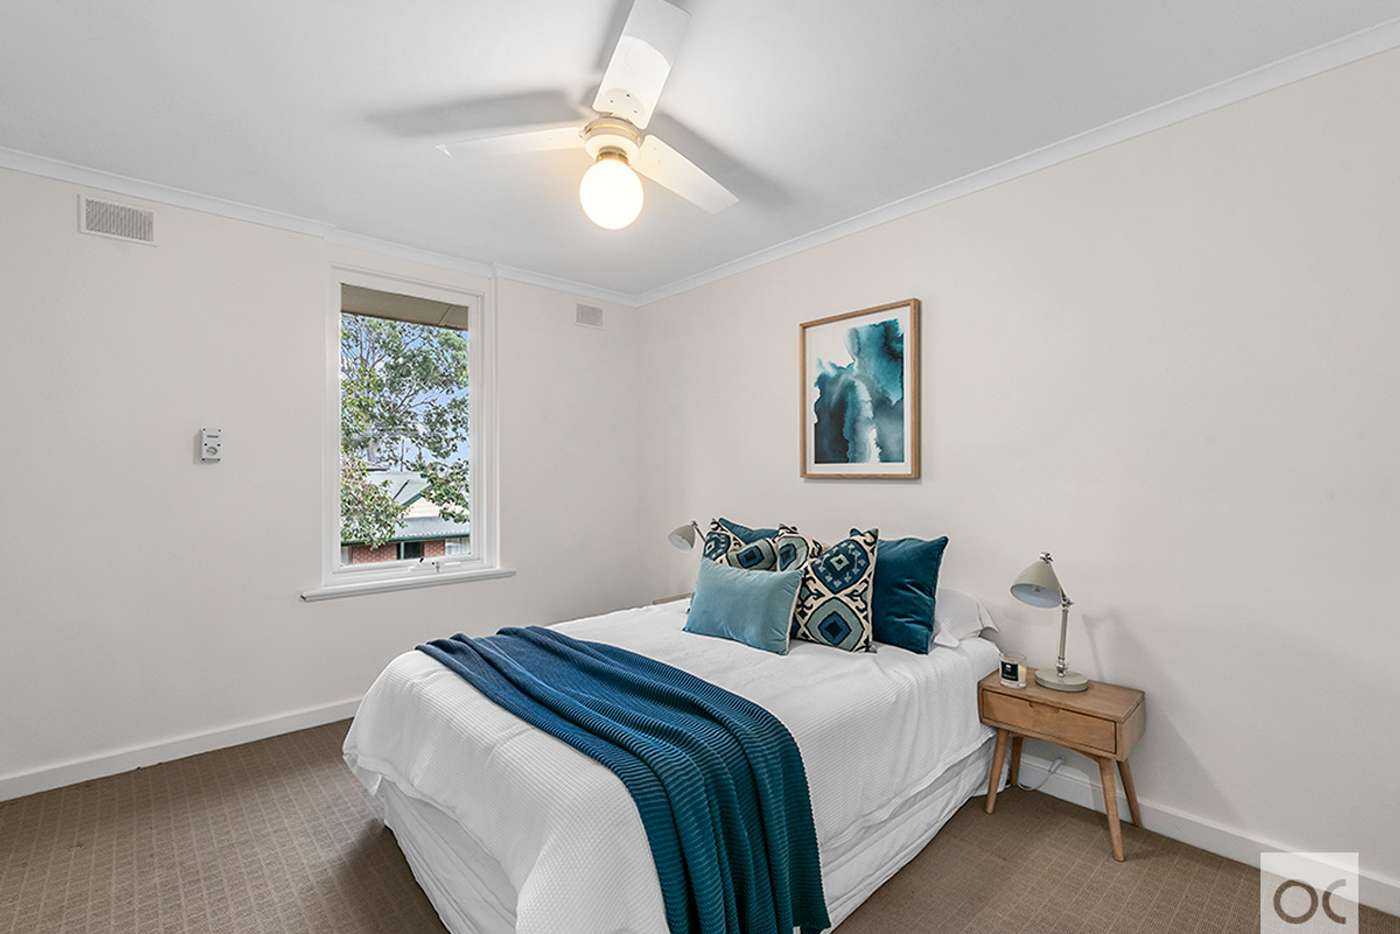 Sixth view of Homely unit listing, 2/46 Queen Street, Norwood SA 5067